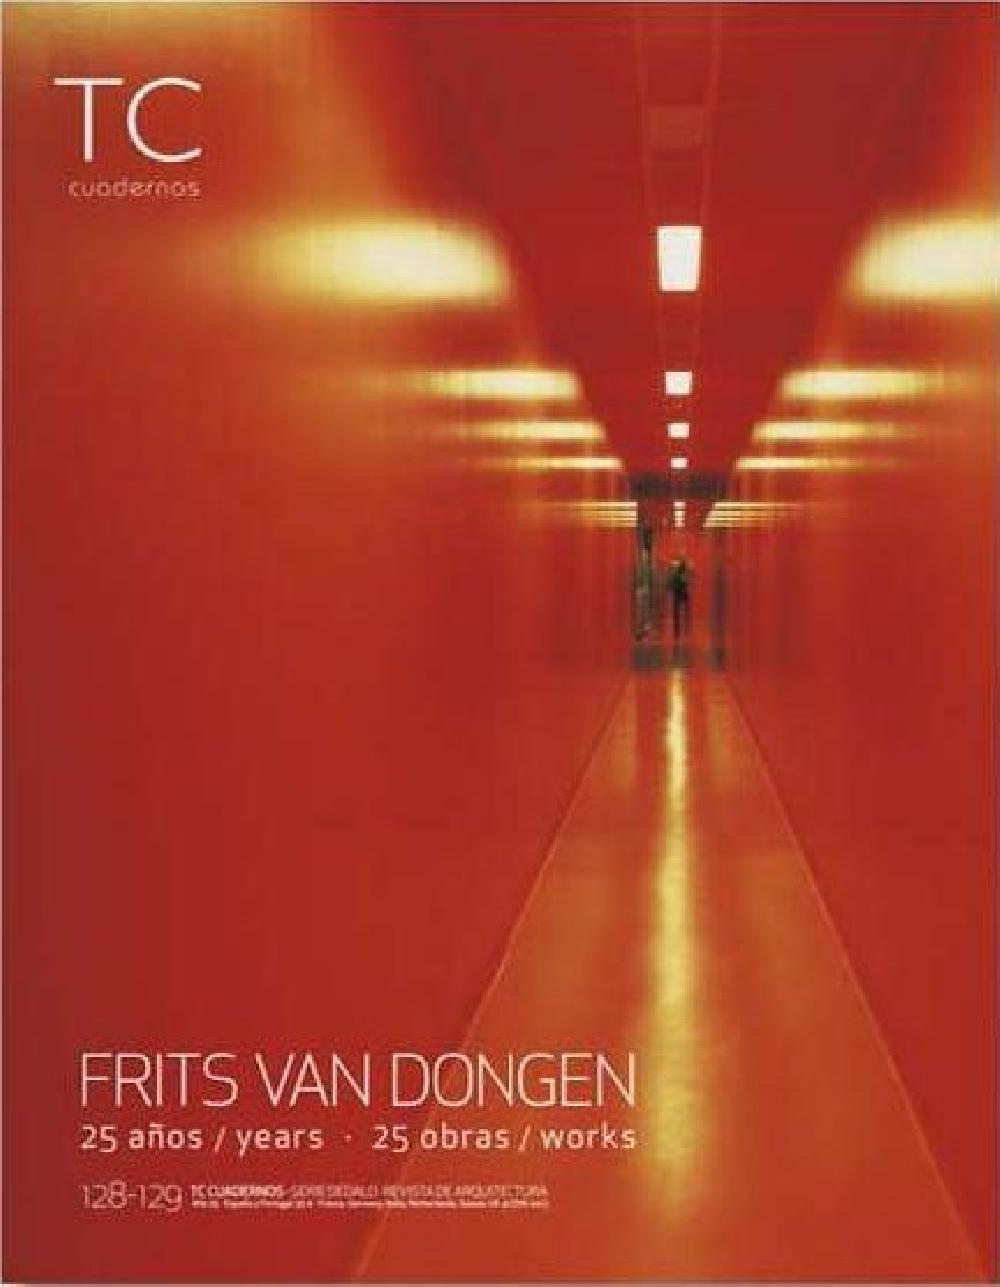 TC Cuadernos 128/129 - FRITS VAN DONGEN 25 years/anos 25 works/obras